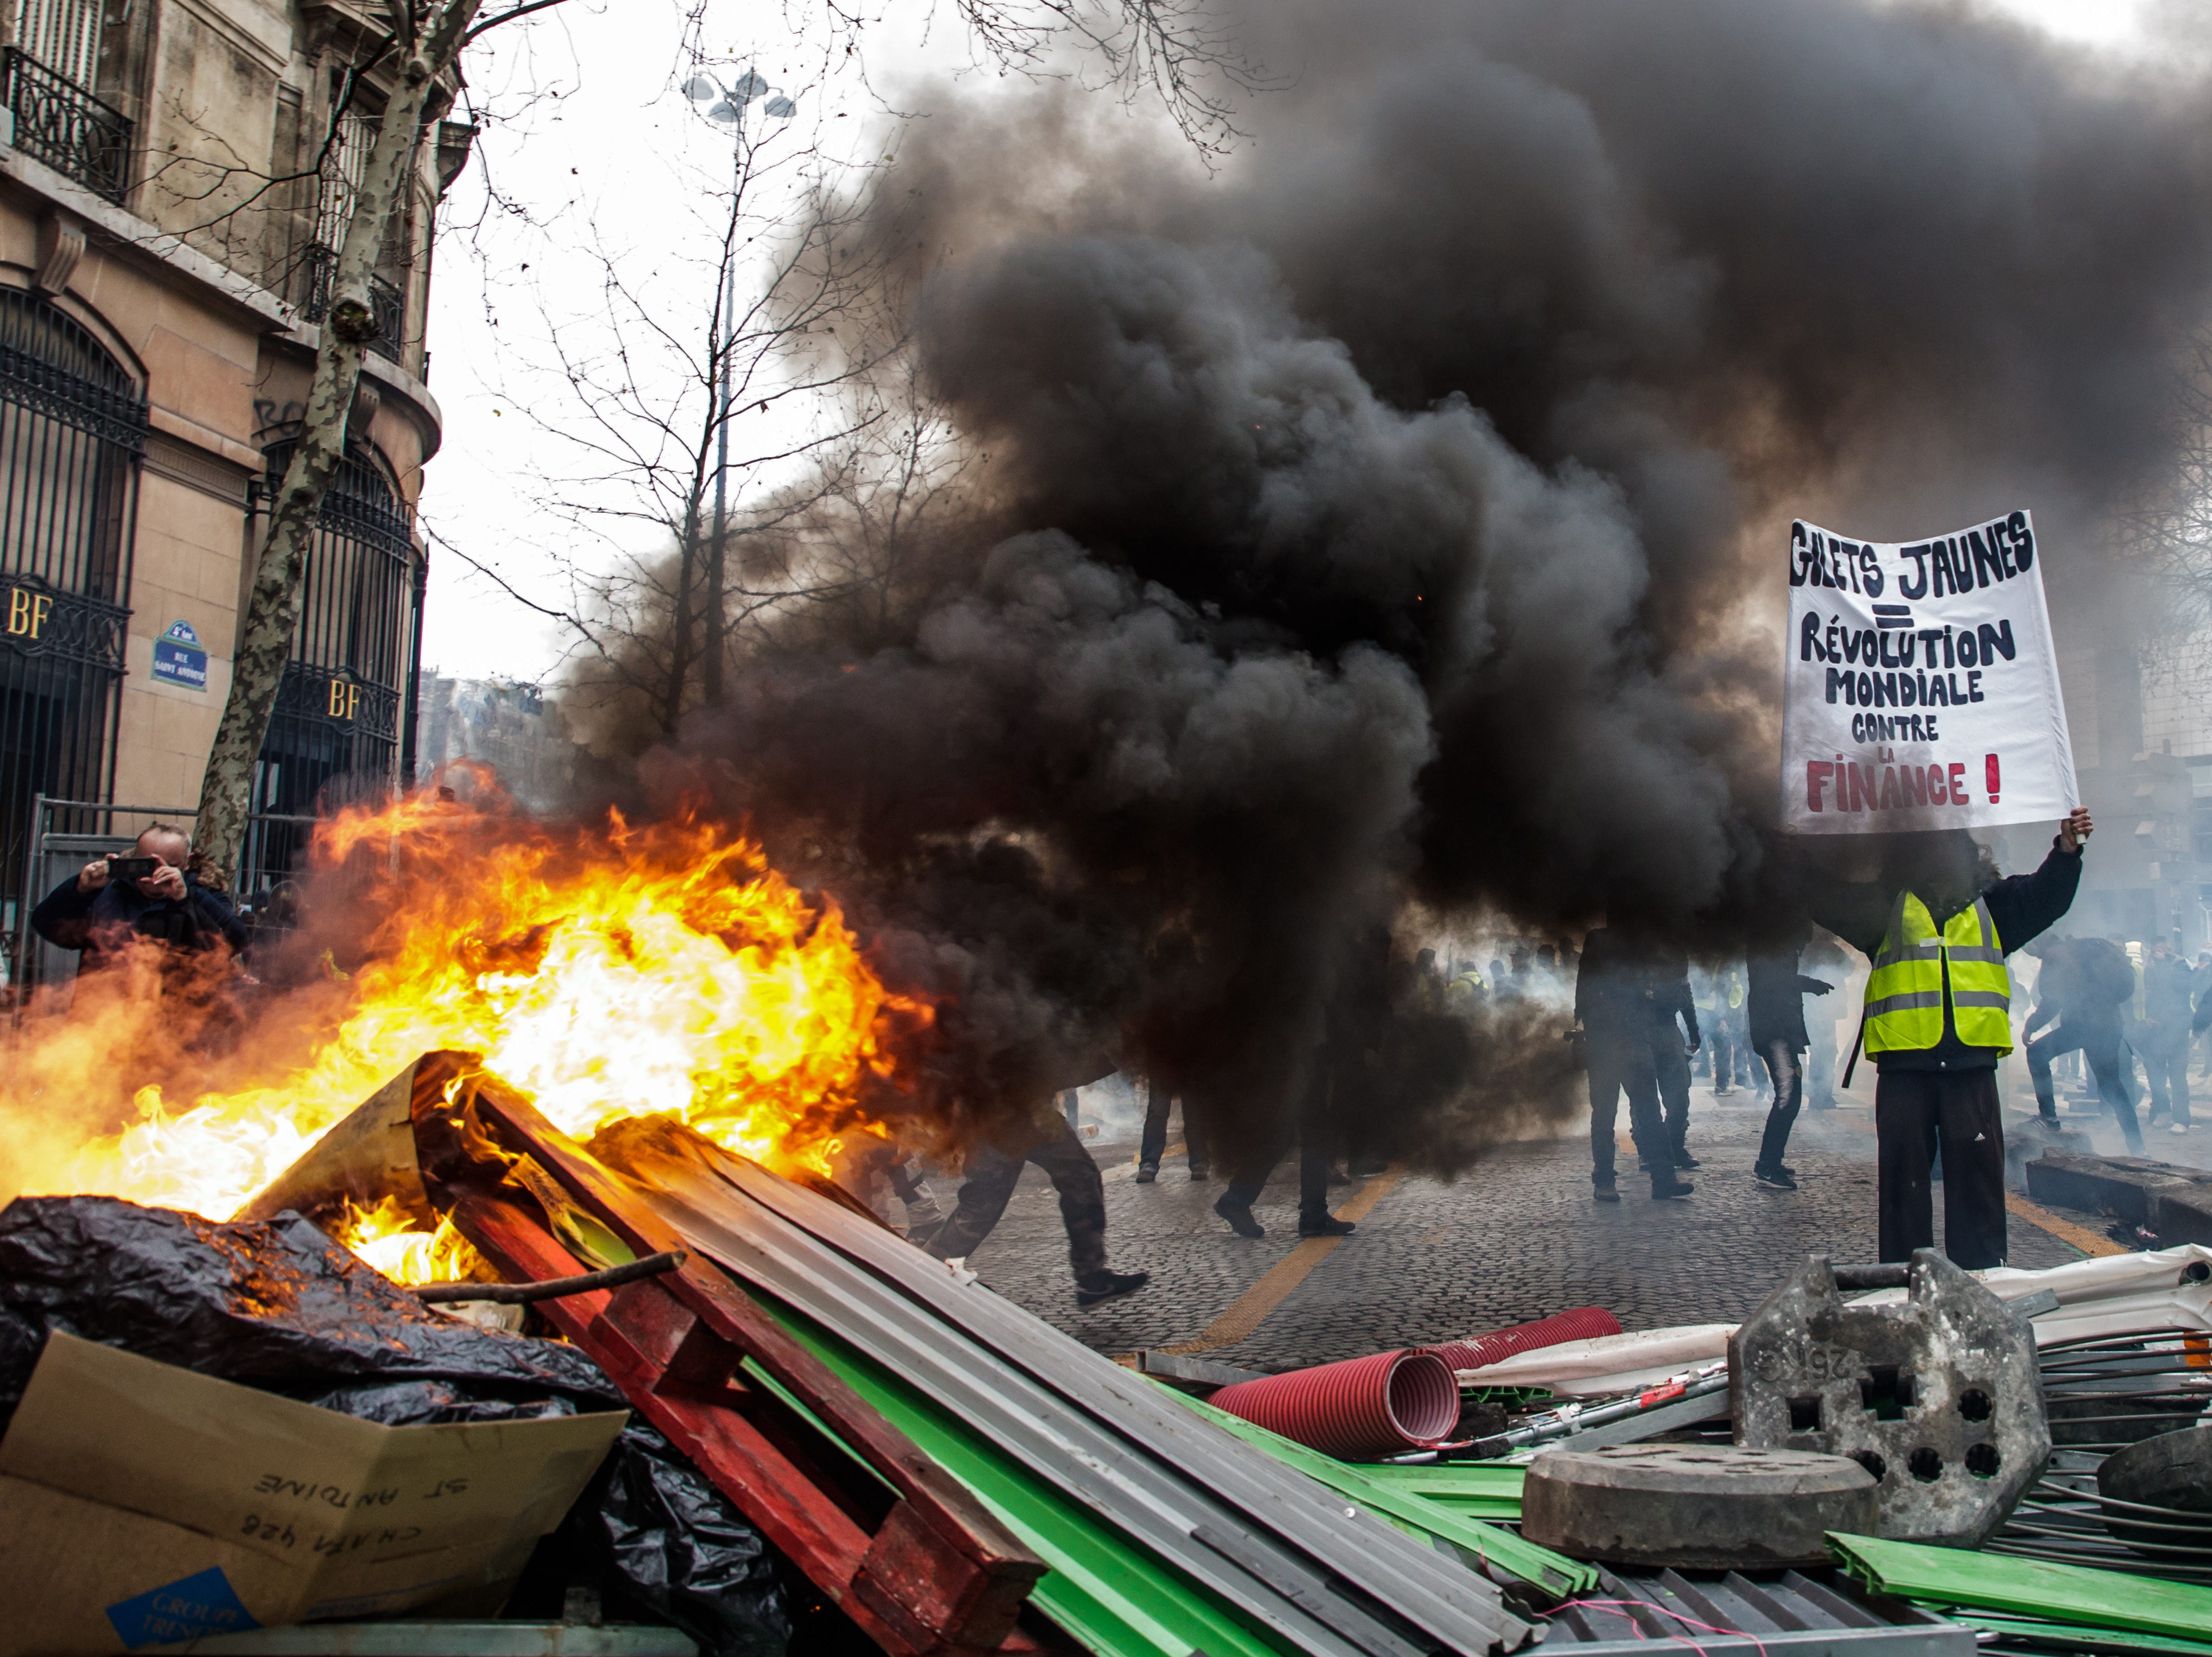 A protester from the 'Gilets Jaunes' (Yellow Vests) movement holds a poster reading 'Yellow Vests World Revolution against the Finance' as clashes erupt next to the Place de la Bastille during the 'Act XI' demonstration (the 11th consecutive national protest on a Saturday) in Paris, France on Jan. 26, 2019.